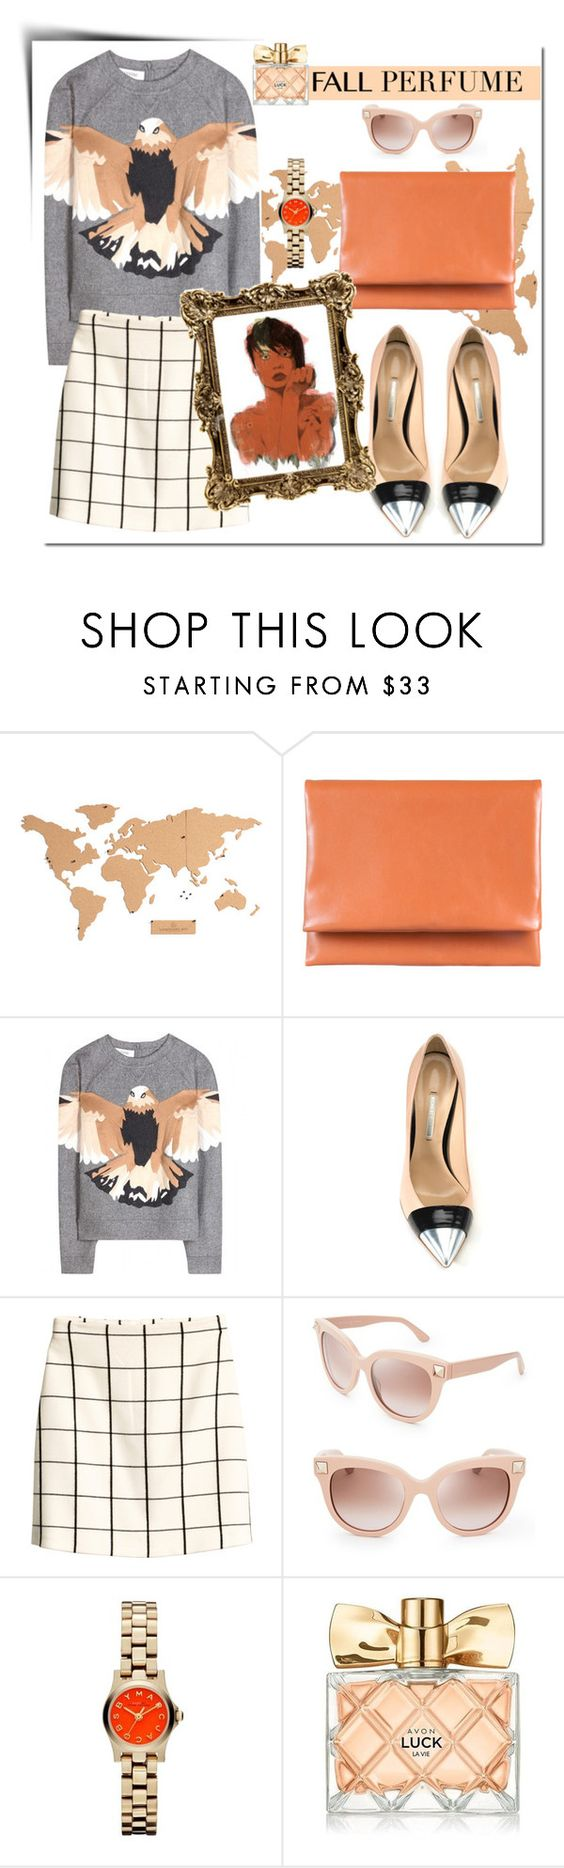 """With Luck"" by vladoslav ❤ liked on Polyvore featuring Otaat, Valentino, Nicholas Kirkwood, H&M, Marc by Marc Jacobs, Avon, Supersonic, Fall, beige and checks"